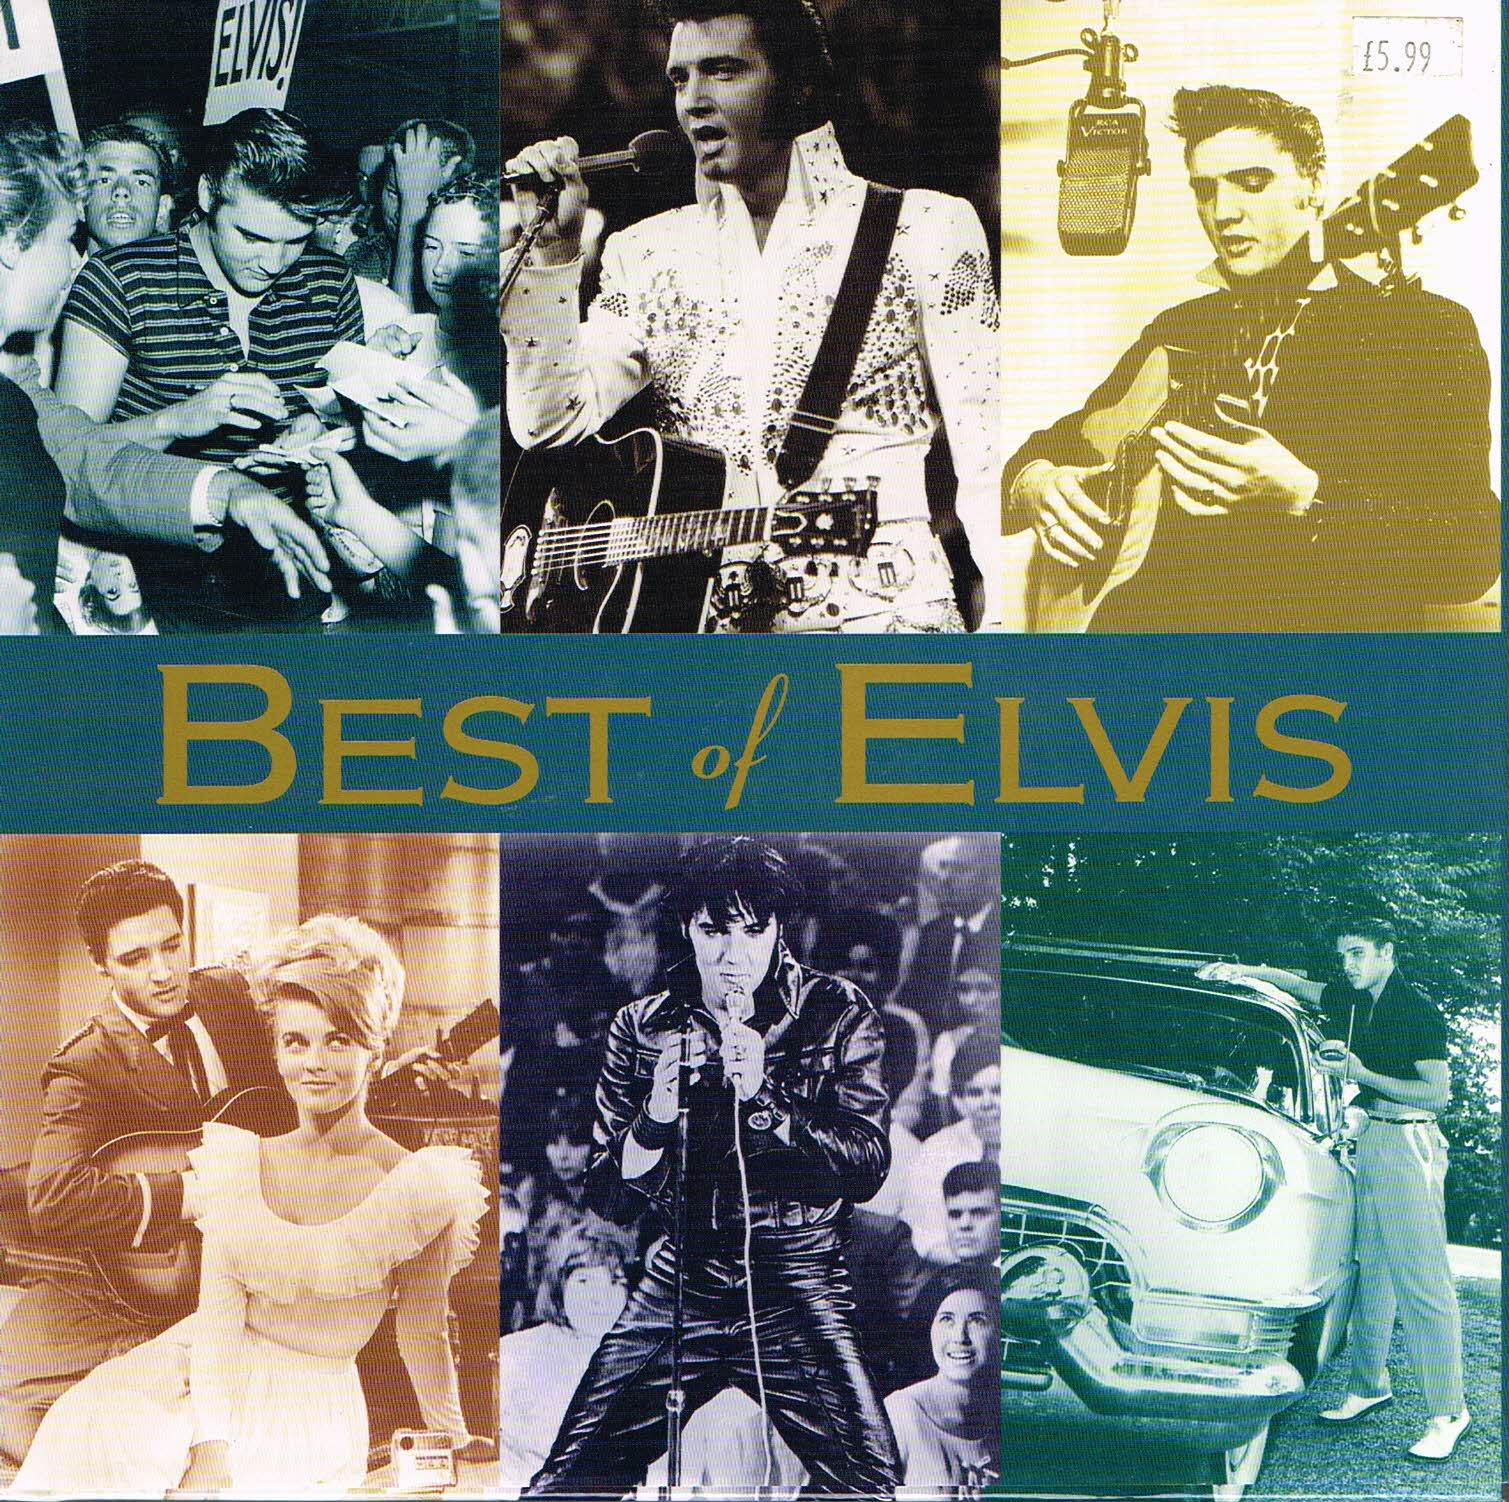 Best of Elvis by Susan Doll 1997 Hardback Book DJ refS This is a pre-owned book in very good condition.  Please see photo and read full description.